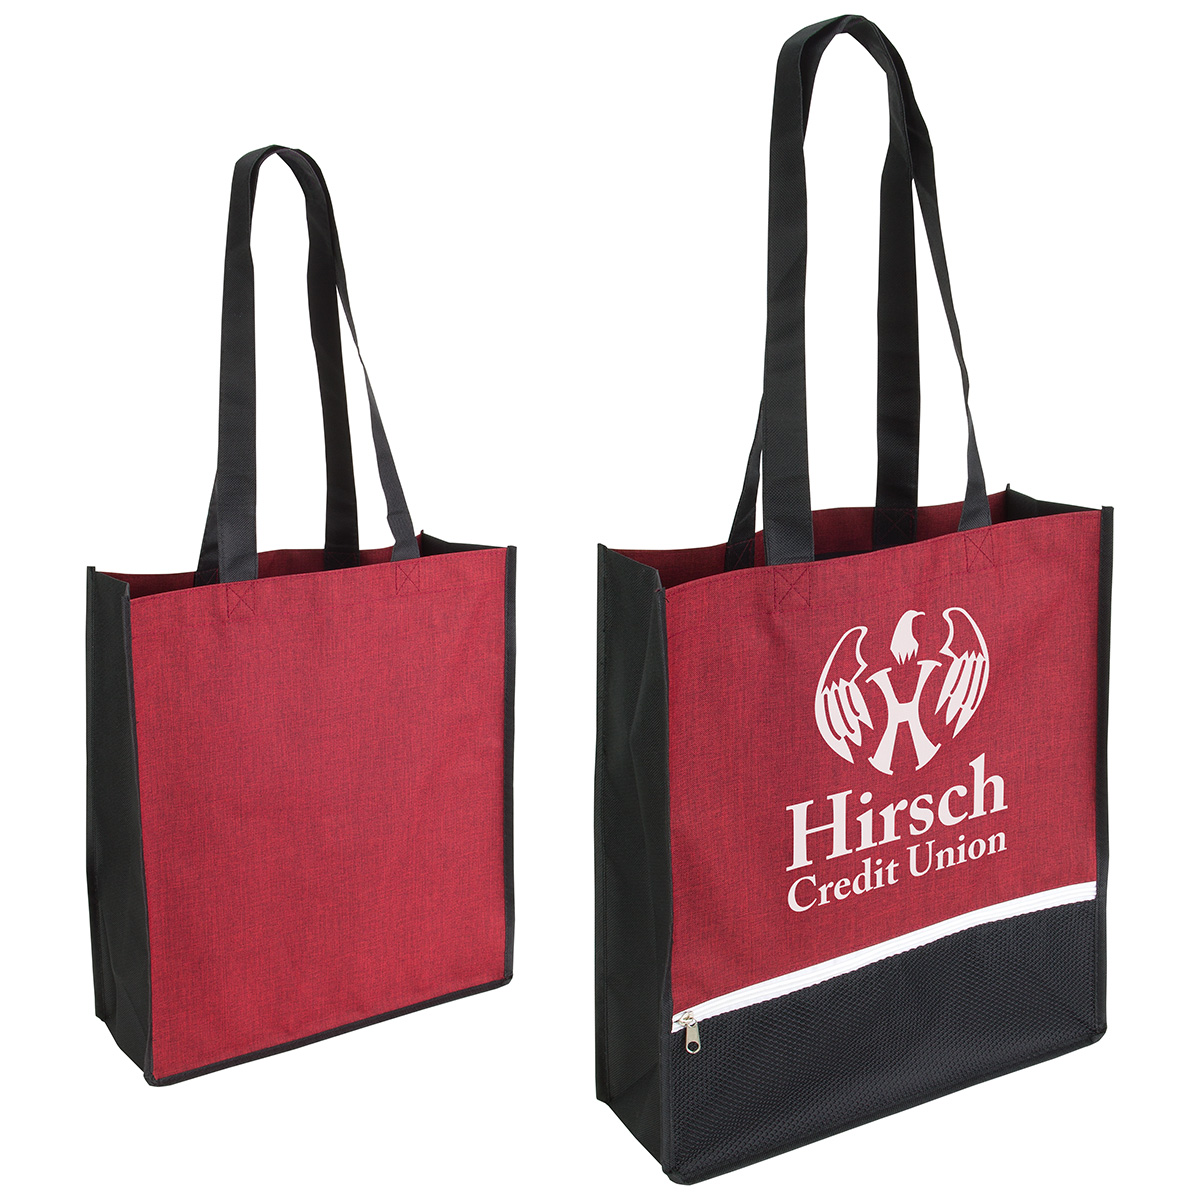 Greystone Tote Bag, WBA-GT18, 1 Colour Imprint